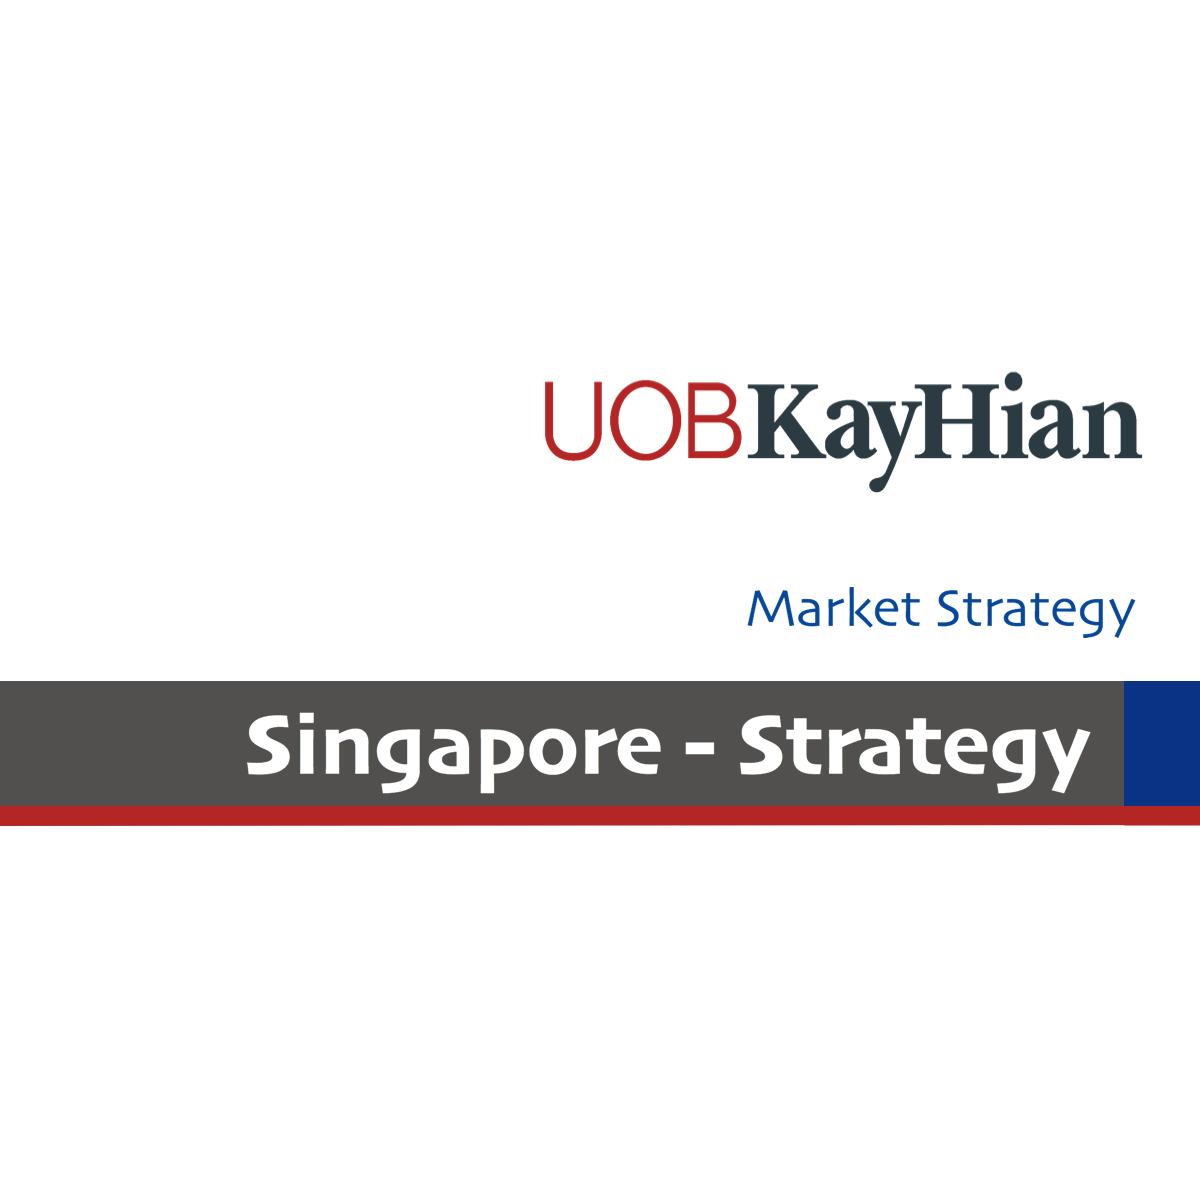 2H18 Market Outlook Singapore - UOB Kay Hian 2018-06-01: Treading Carefully After Market Run